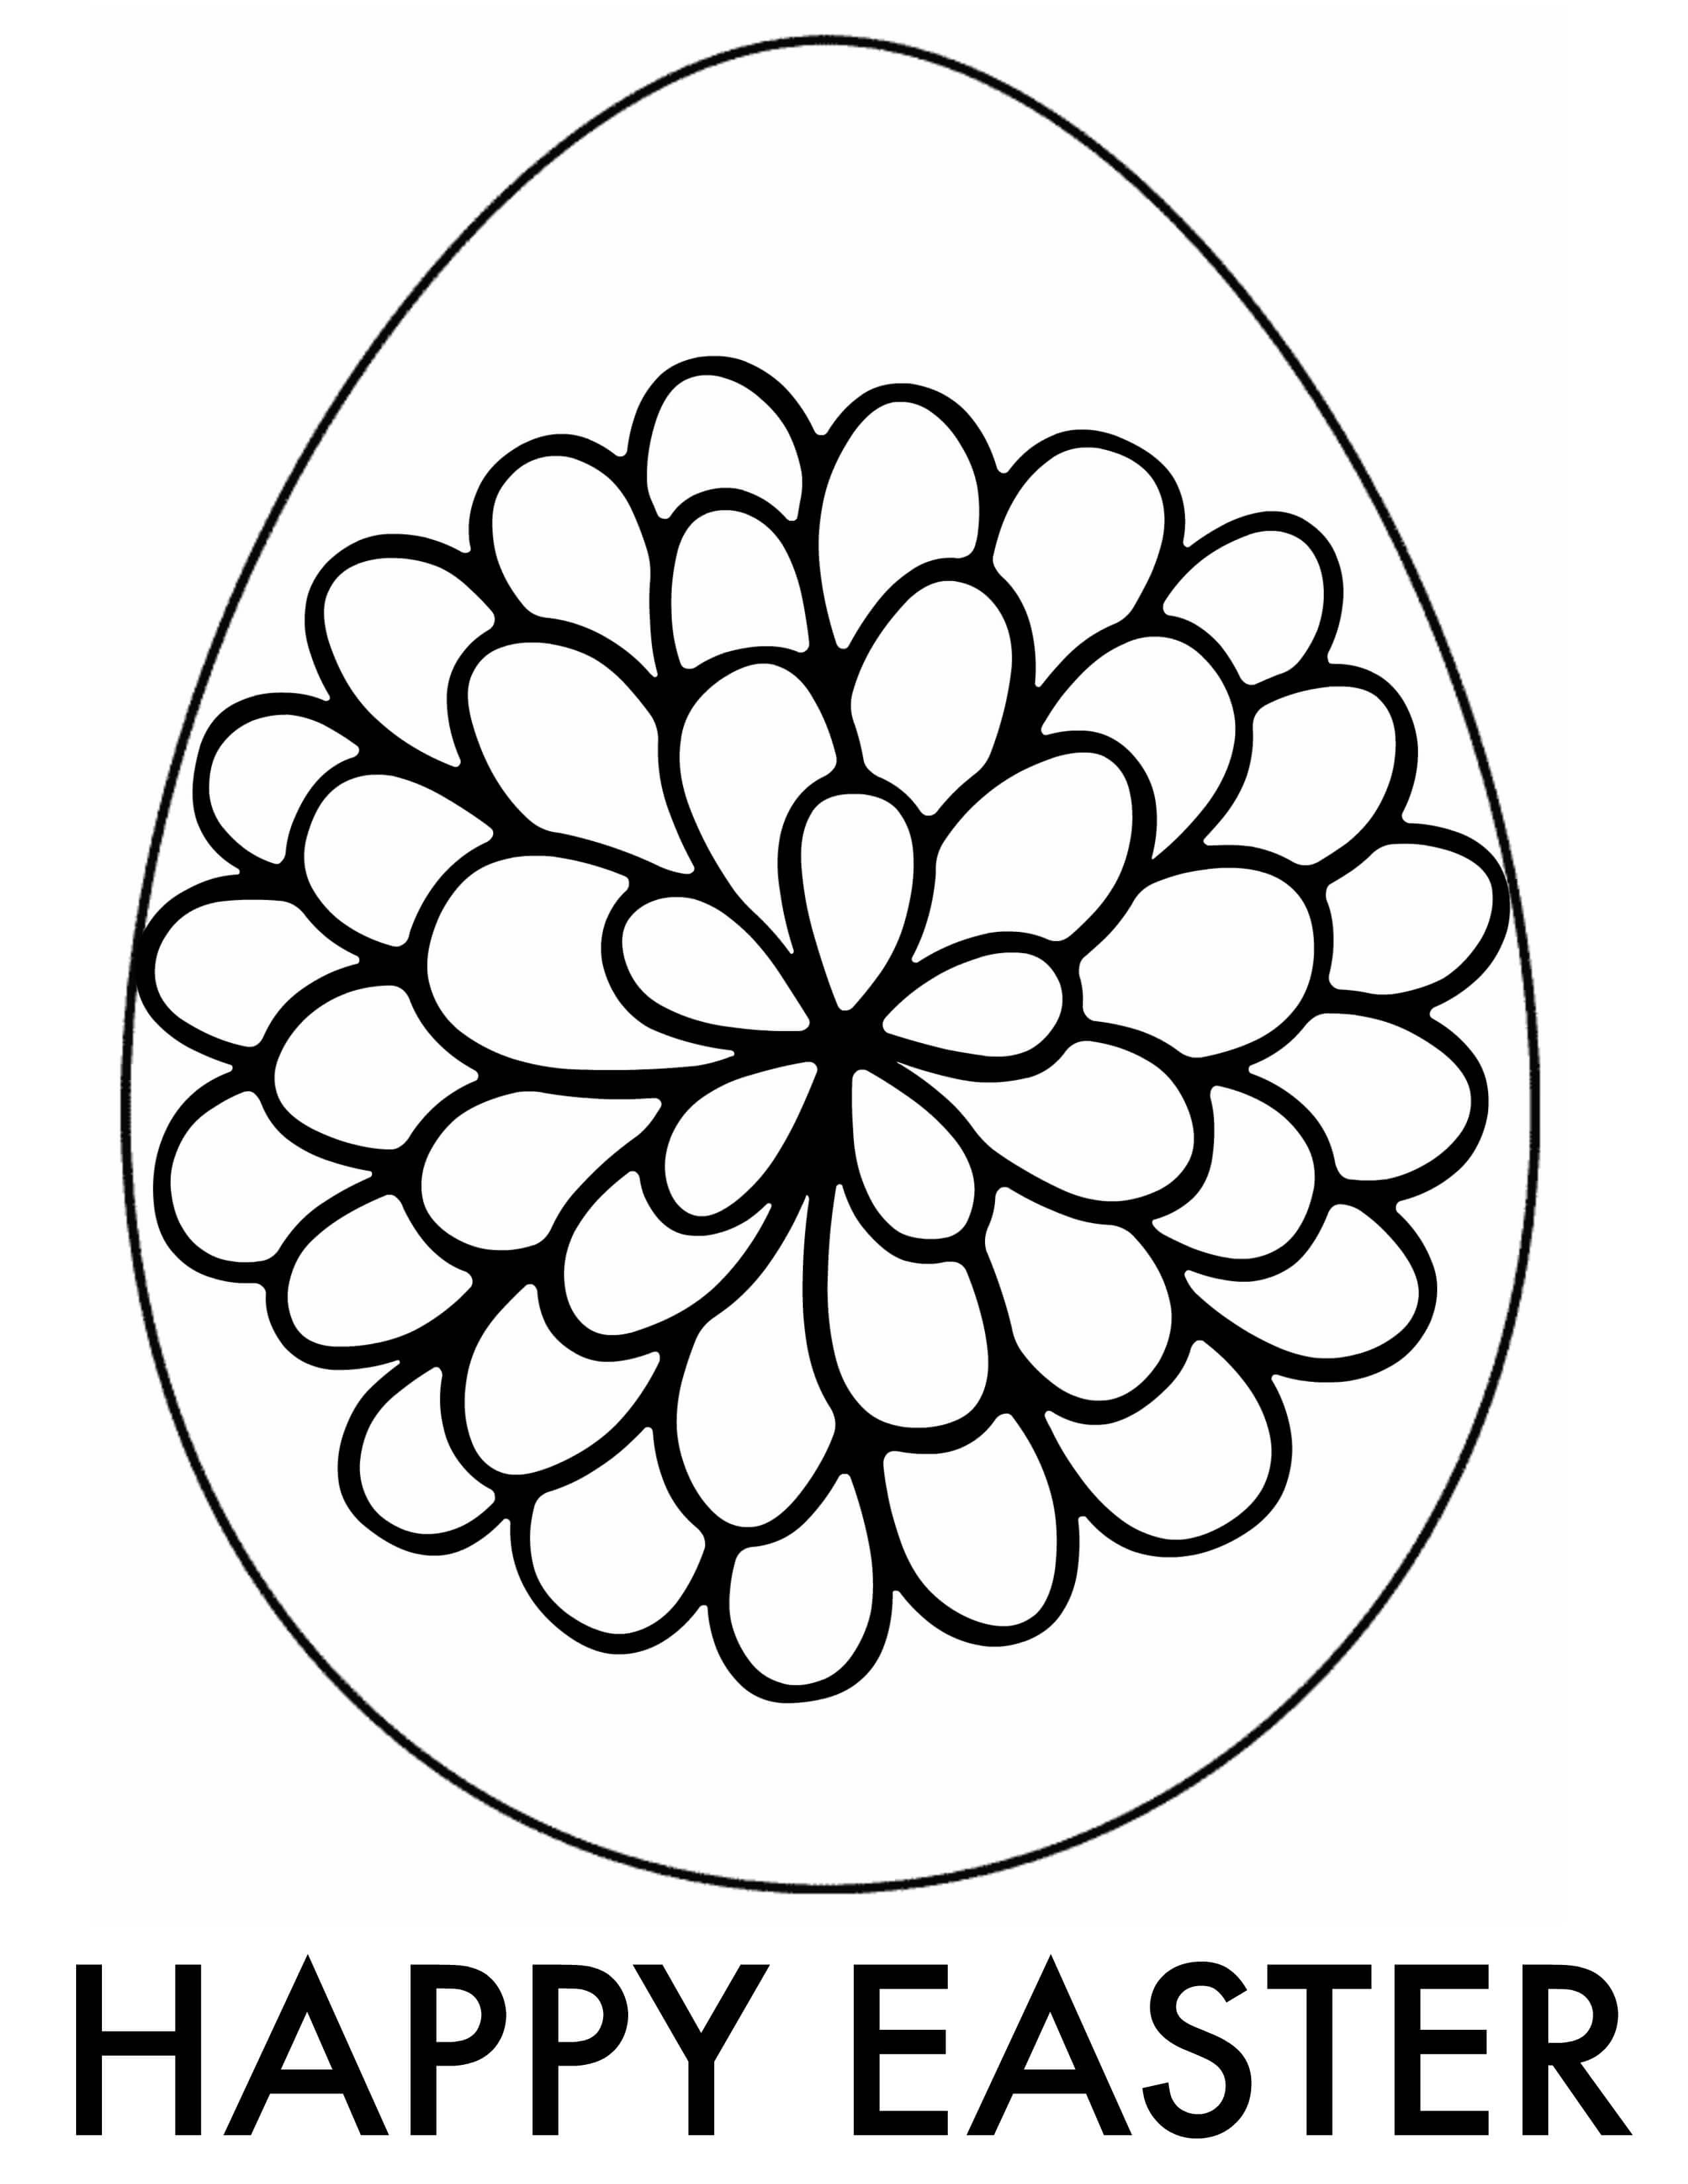 Easter Adult Coloring Pages   Free Printable Downloads